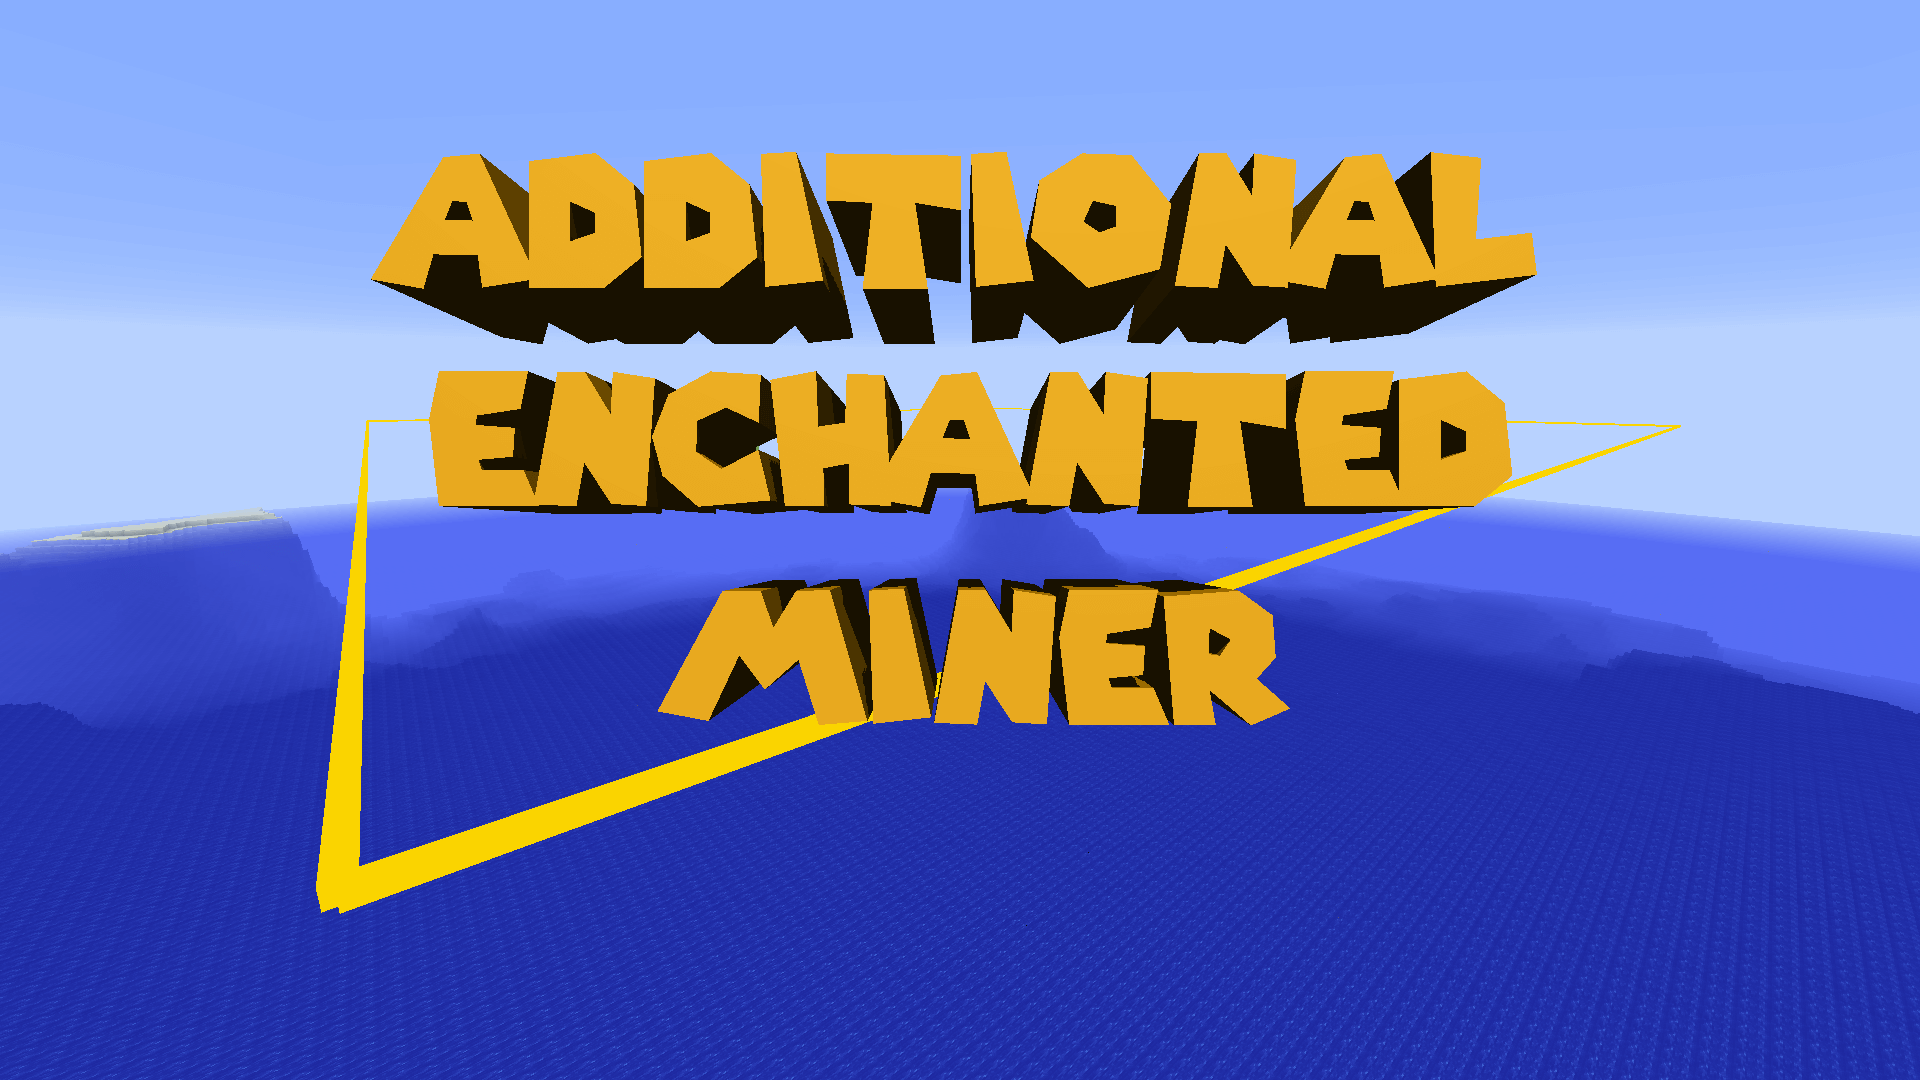 Additional Enchanted Miner скриншот 1